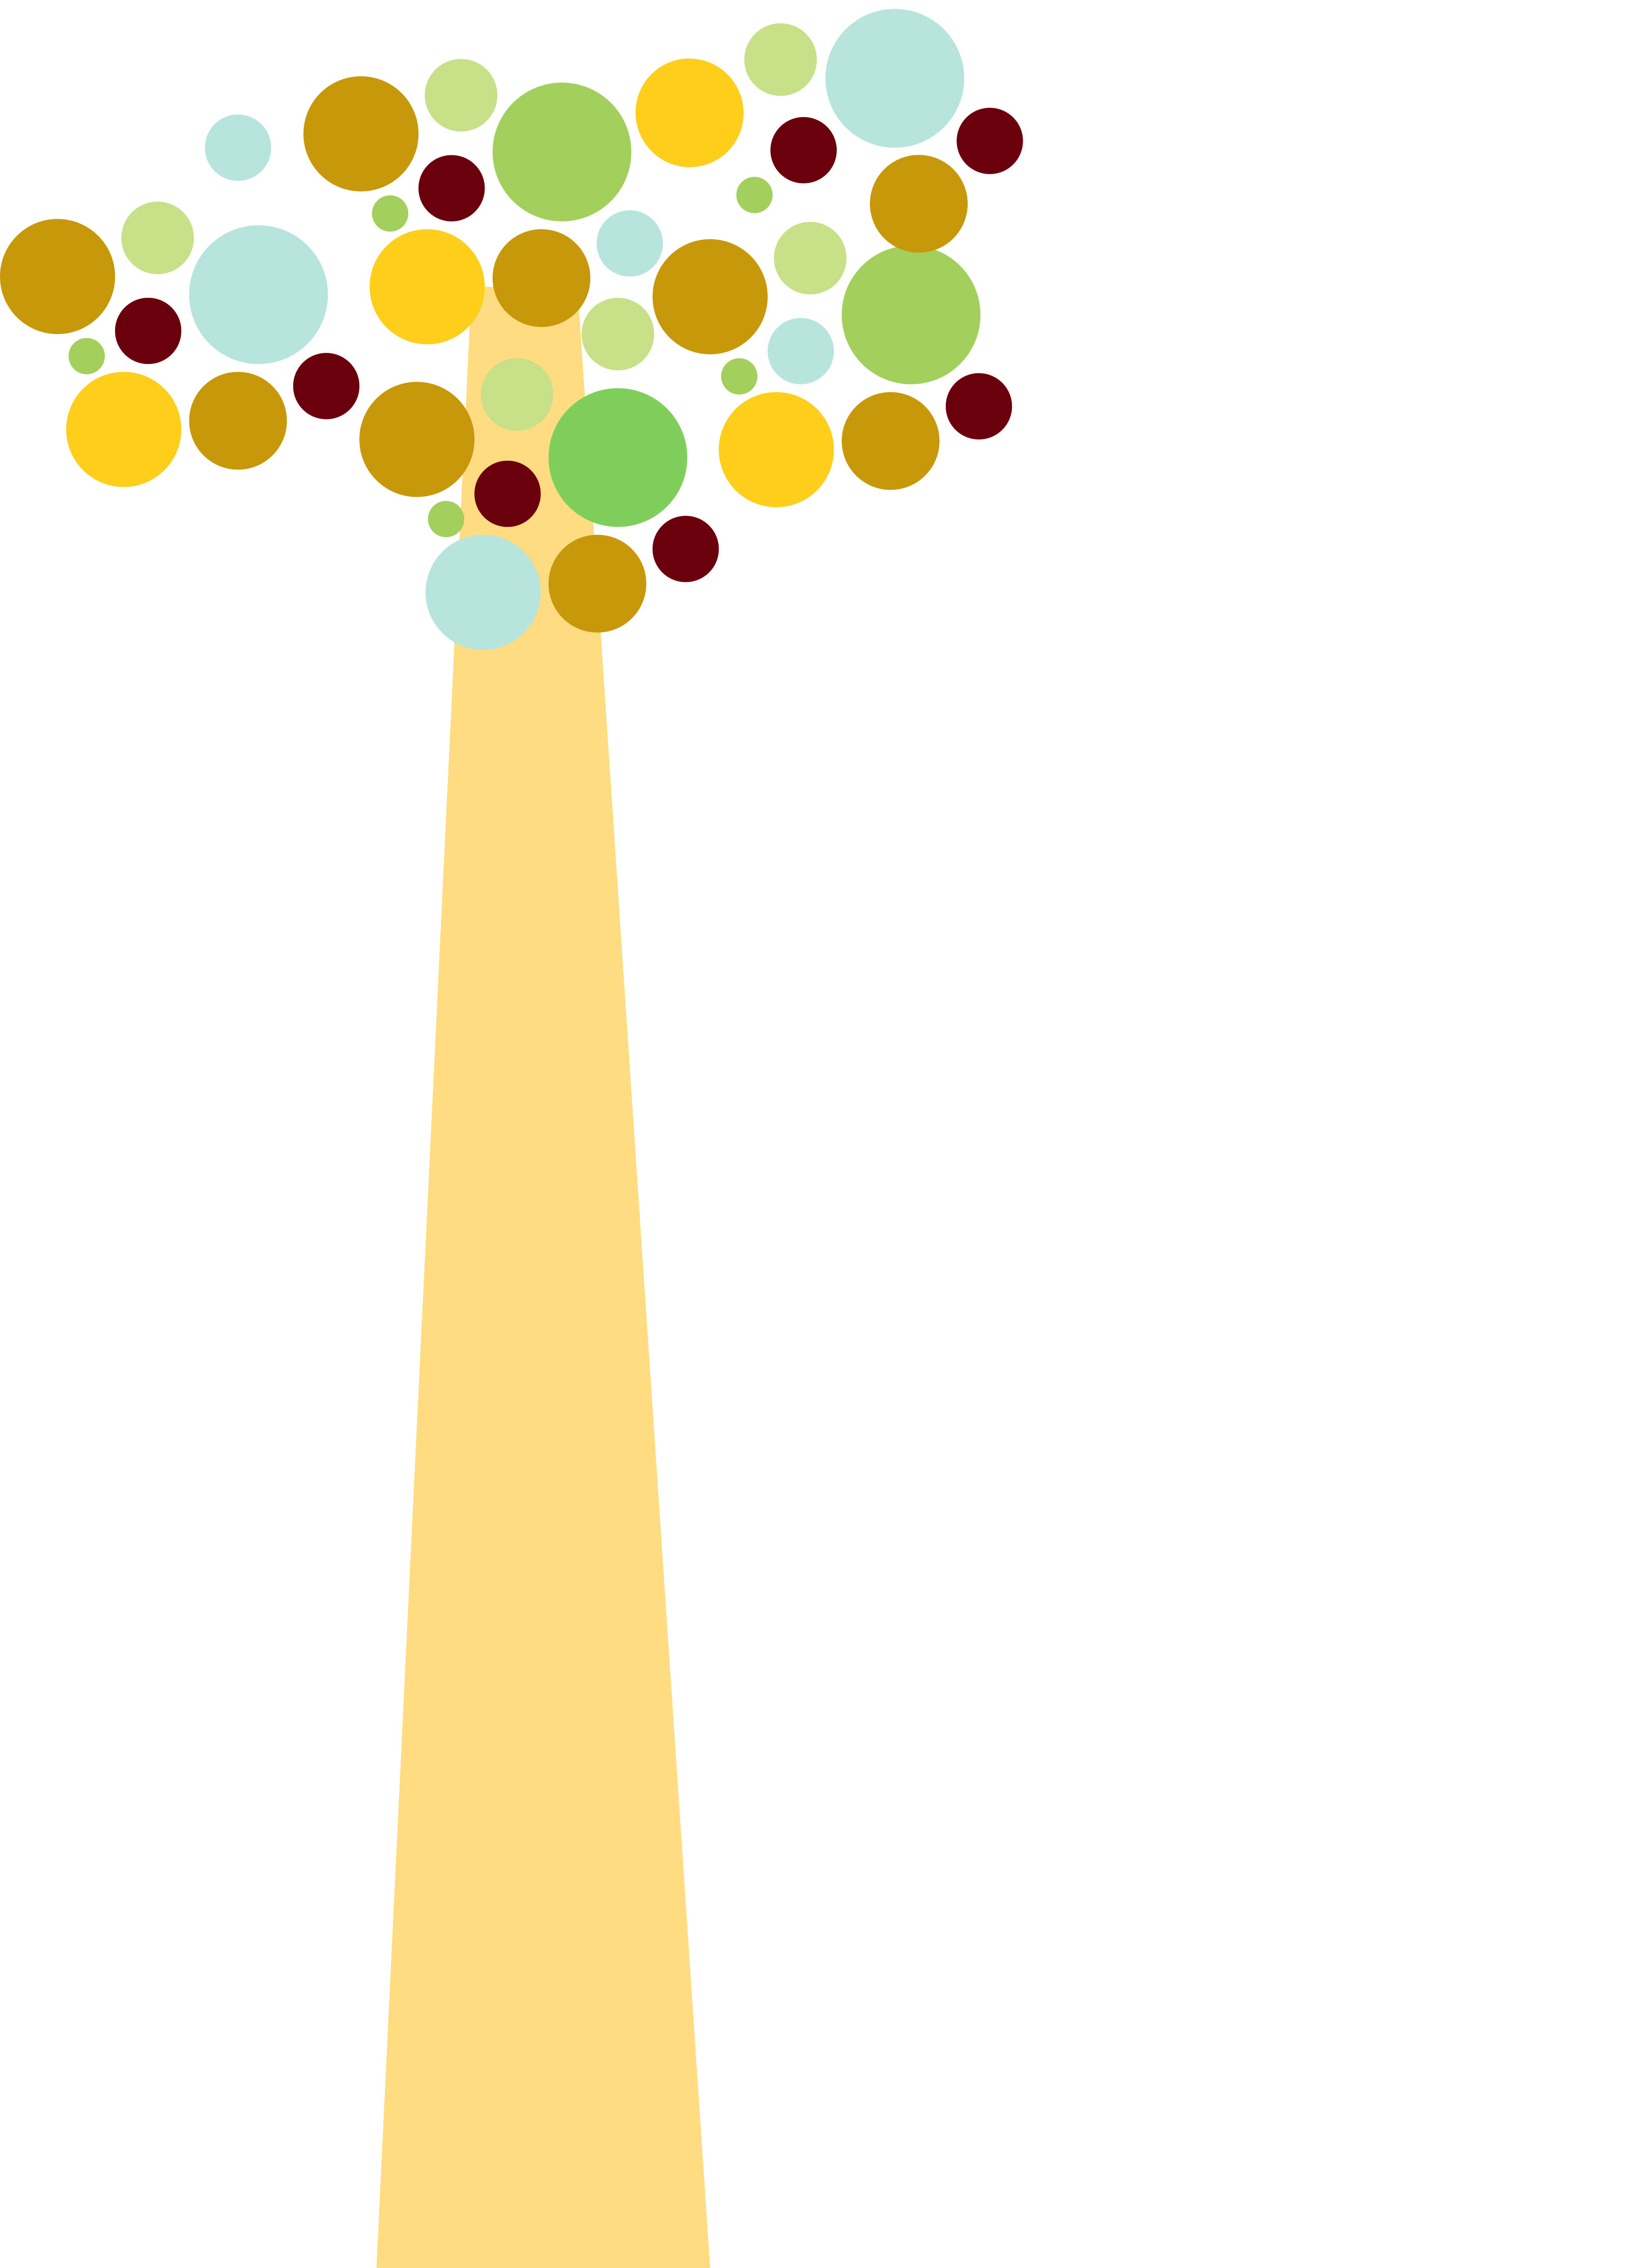 graphic design of a tree